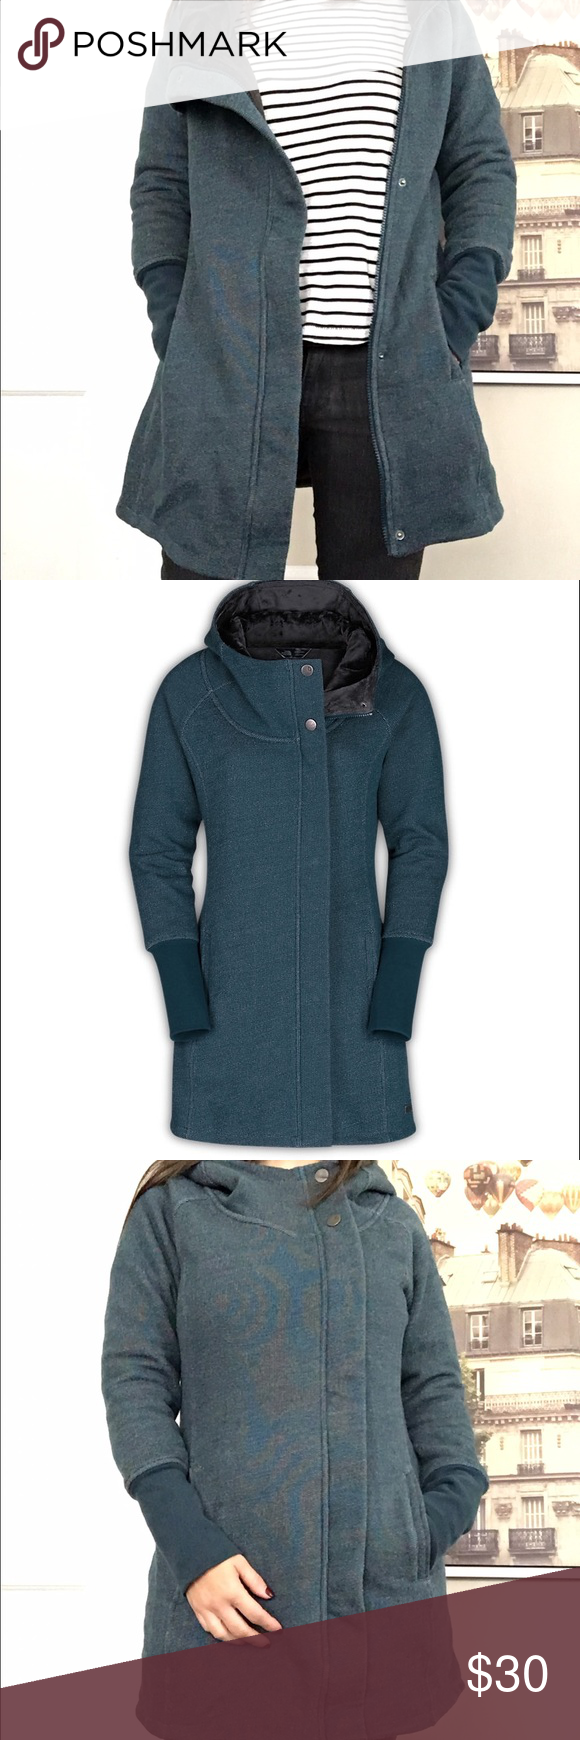 cee2579f5 The North Face Women's Dionne Jacket This coat is super comfy and ...